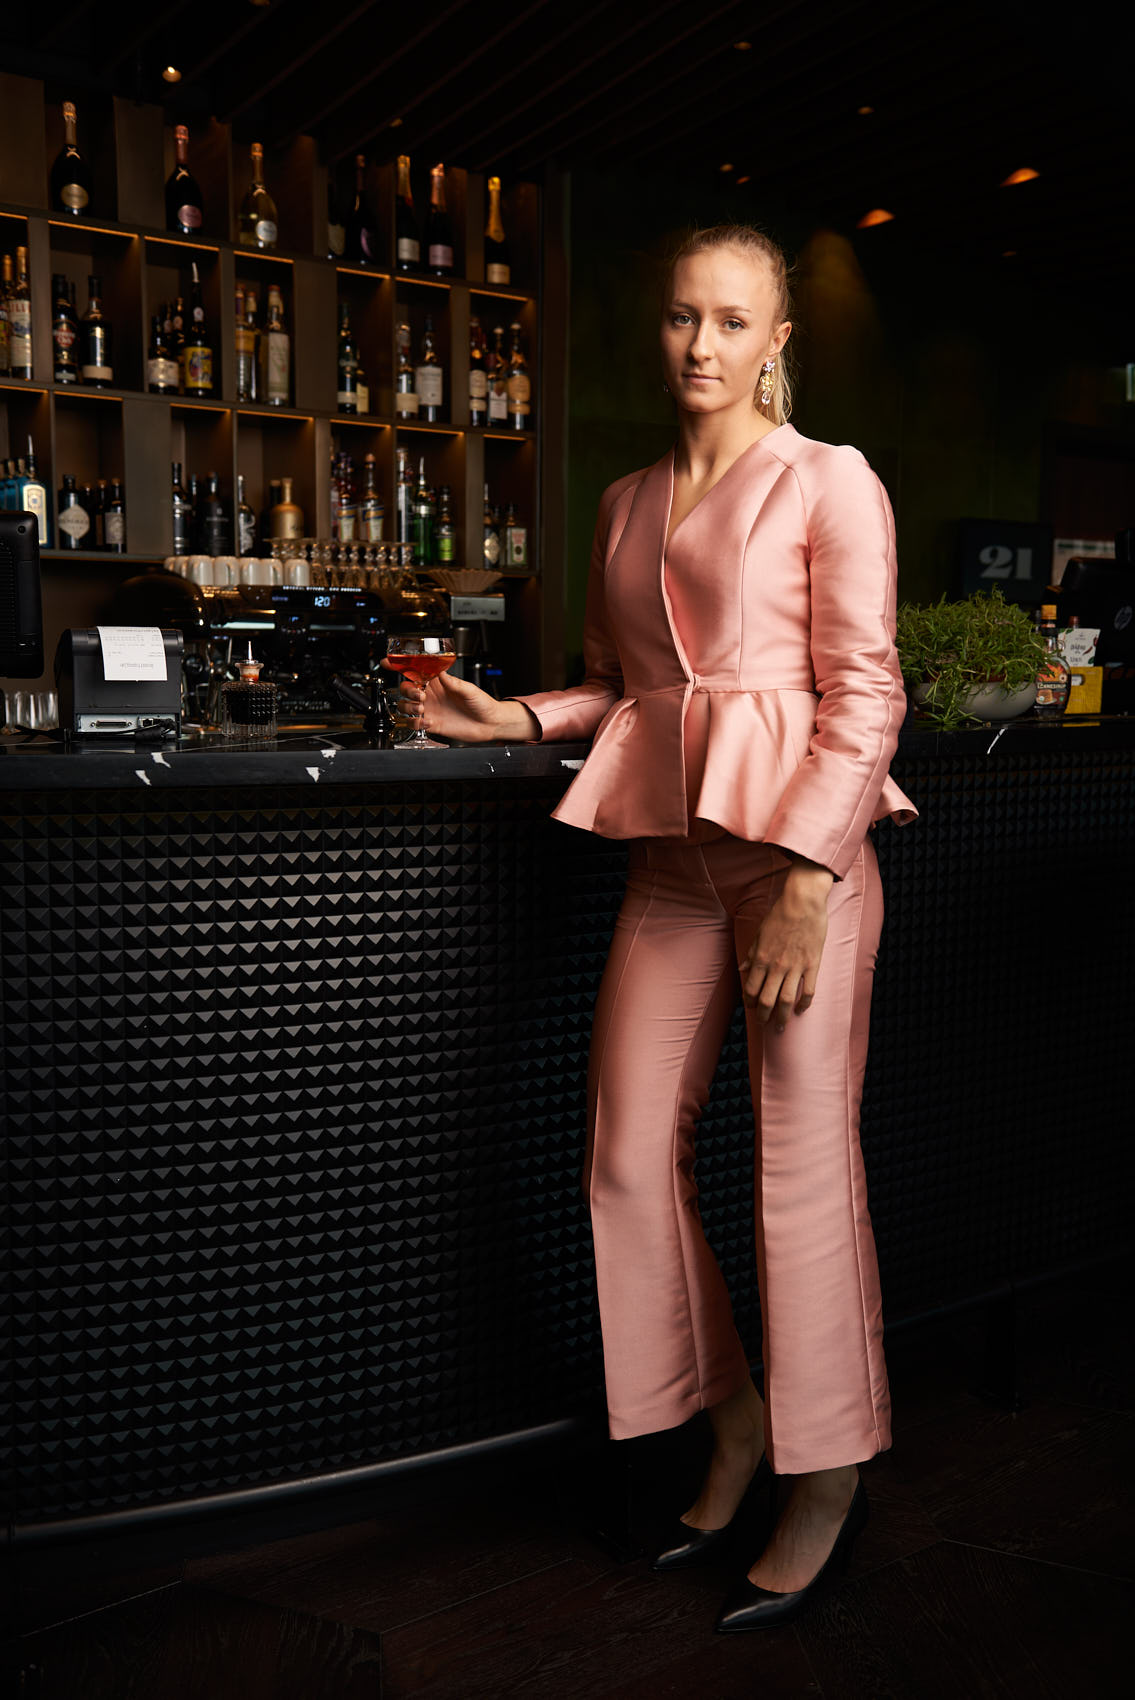 Scandinavian blonde girl standing at the cocktail bar in pink party suit photo by Marcel Tiedje